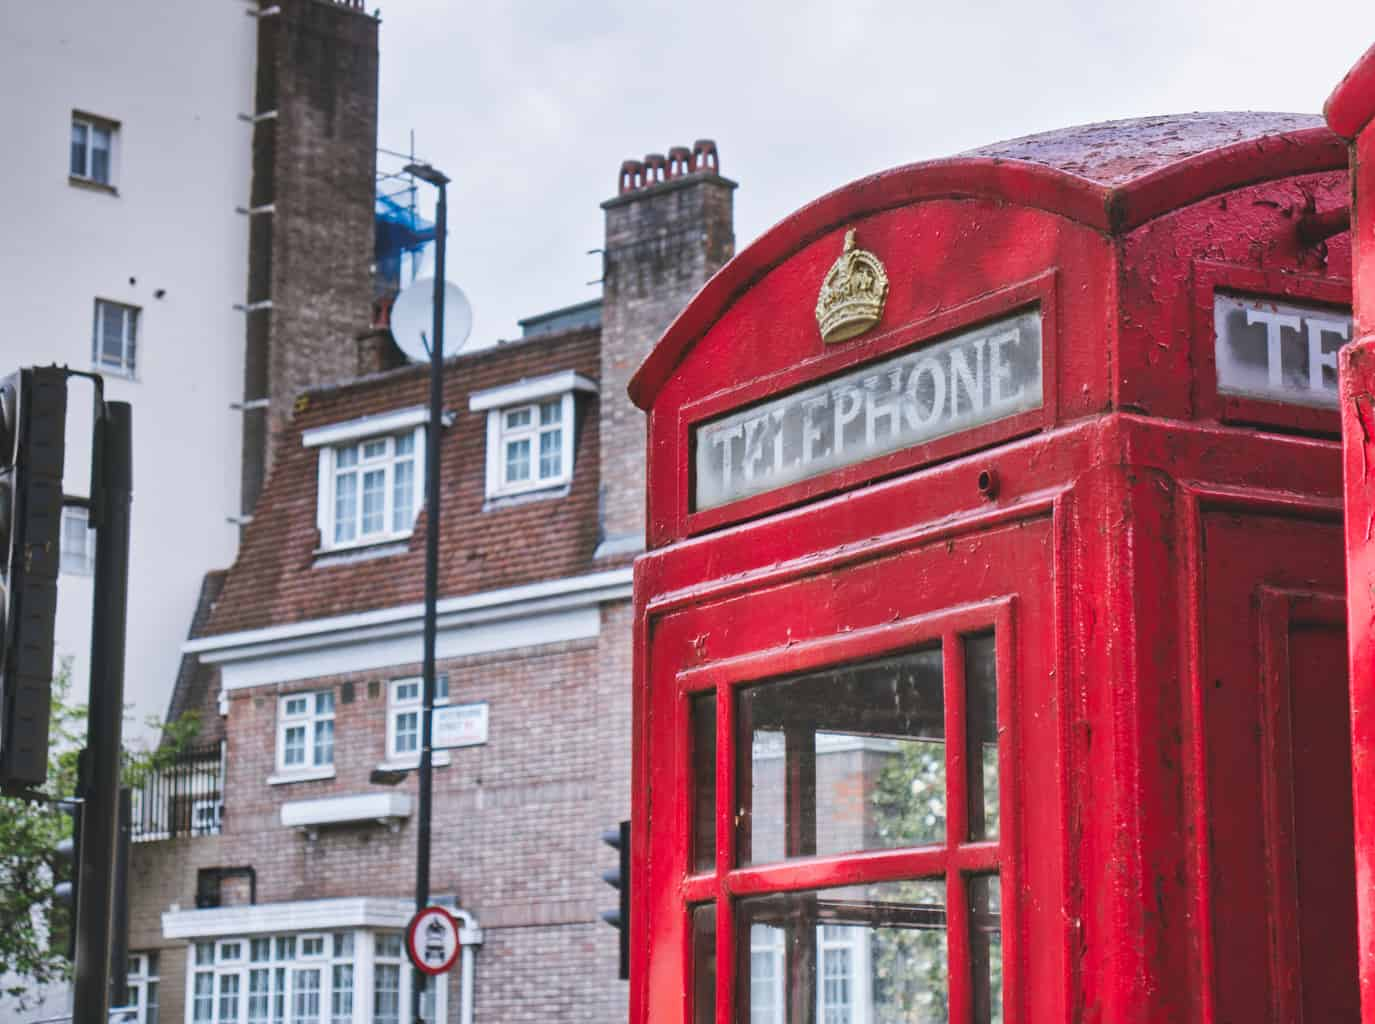 A red telephone booth in London with a building behind with muted colours